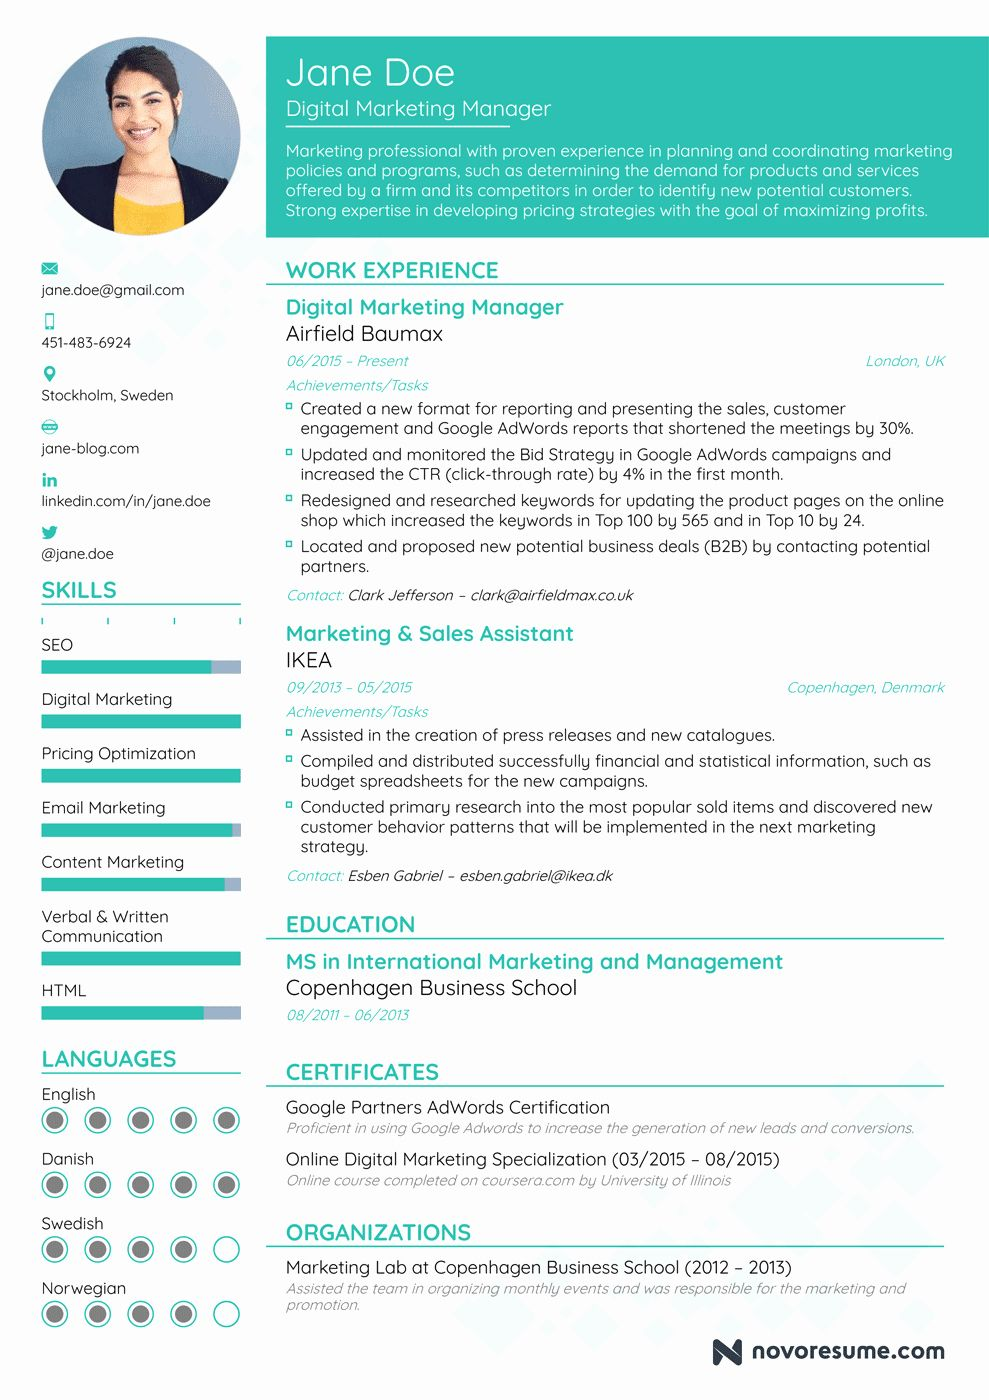 Marketing Director Resume Examples Lovely Marketing Manager Resume Example Update Yours Now For 2019 Best Resume Format Best Resume Template Marketing Resume